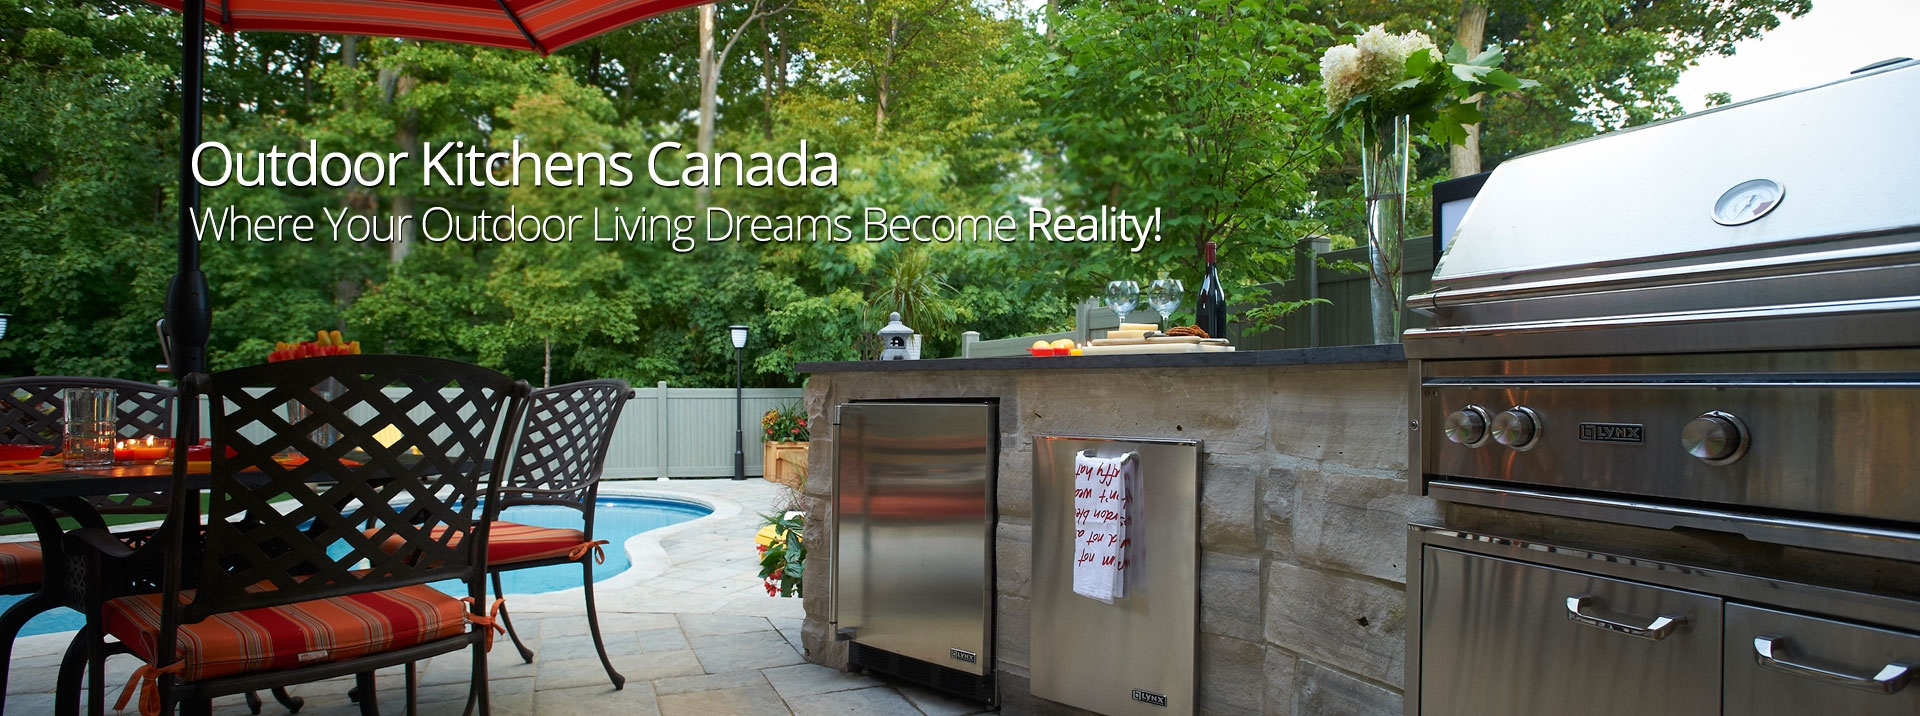 Outdoor Kitchens Canada